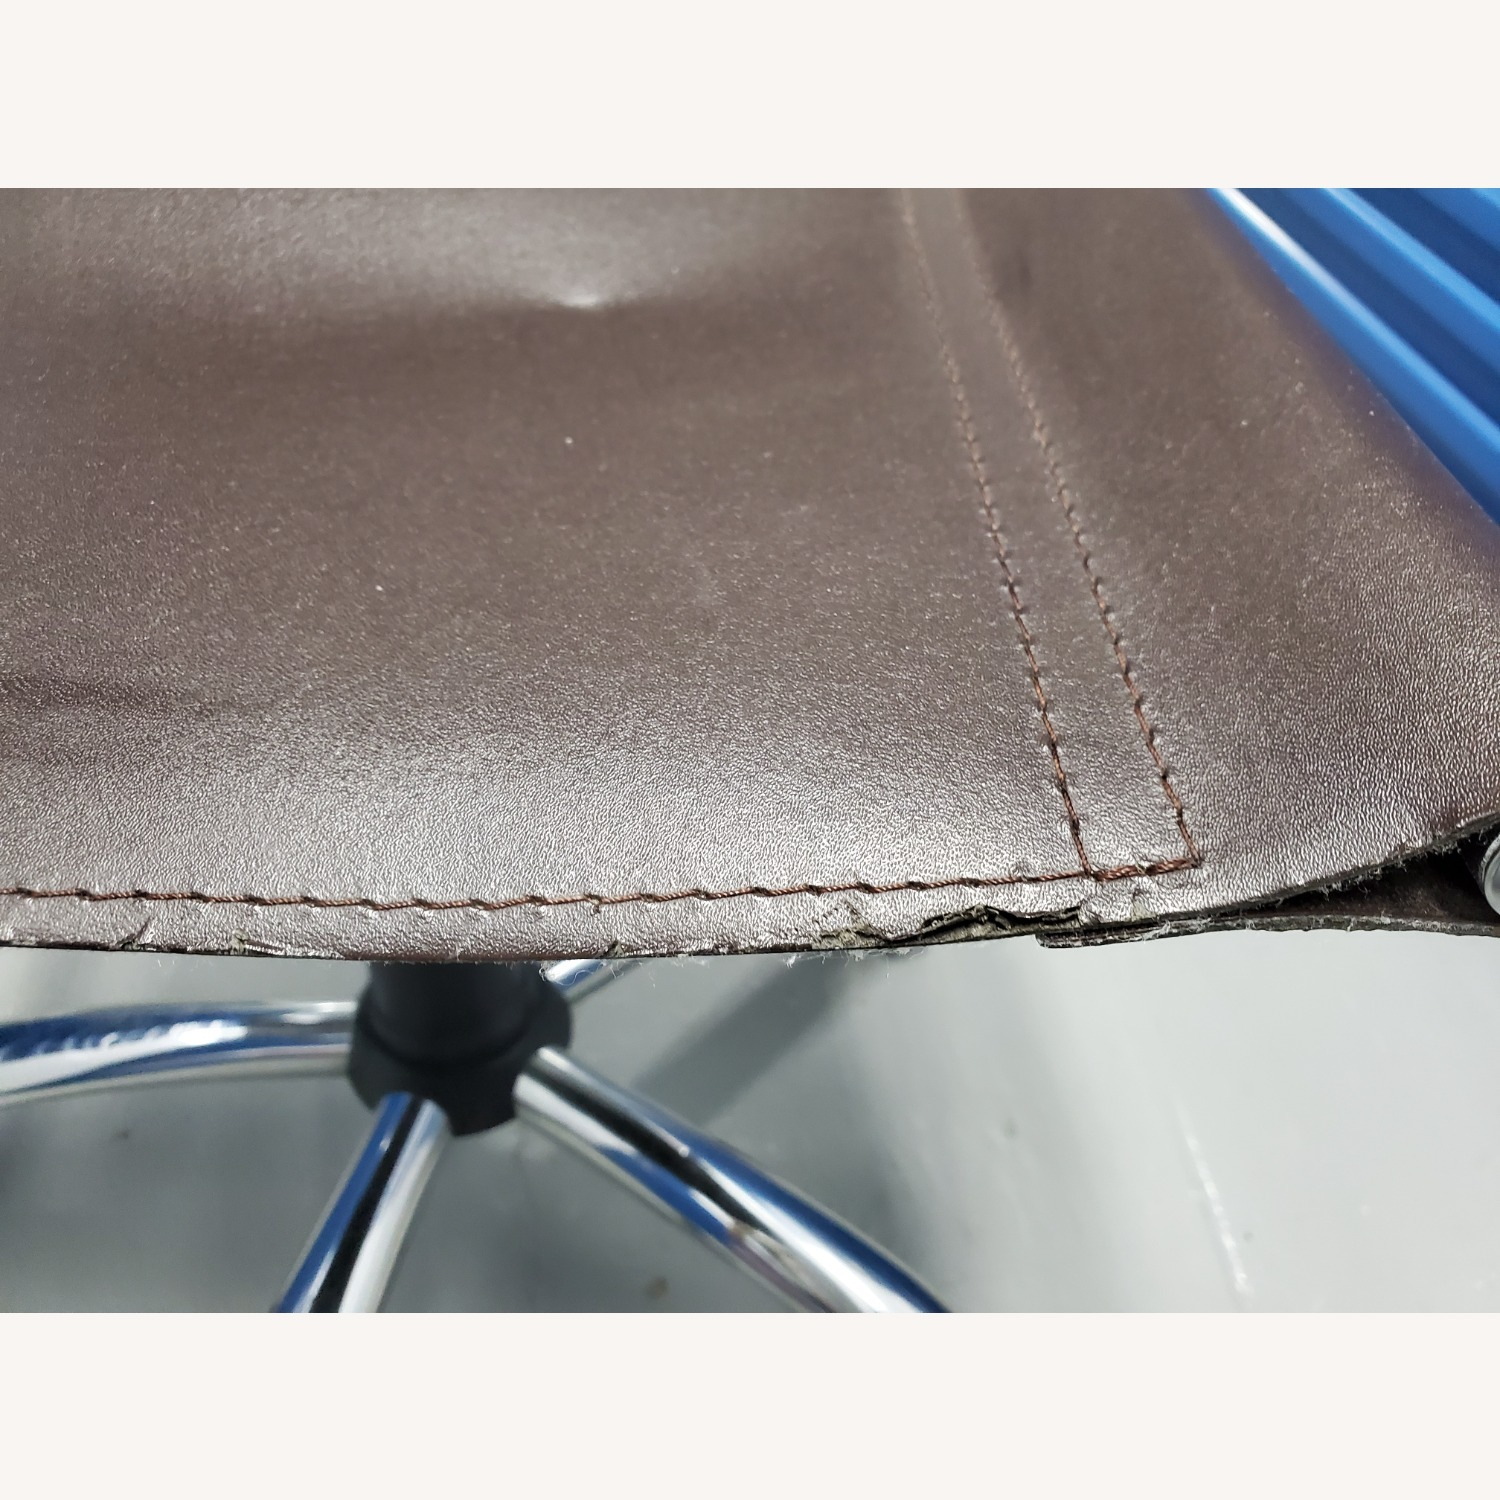 West Elm Leather Office Chair - image-11